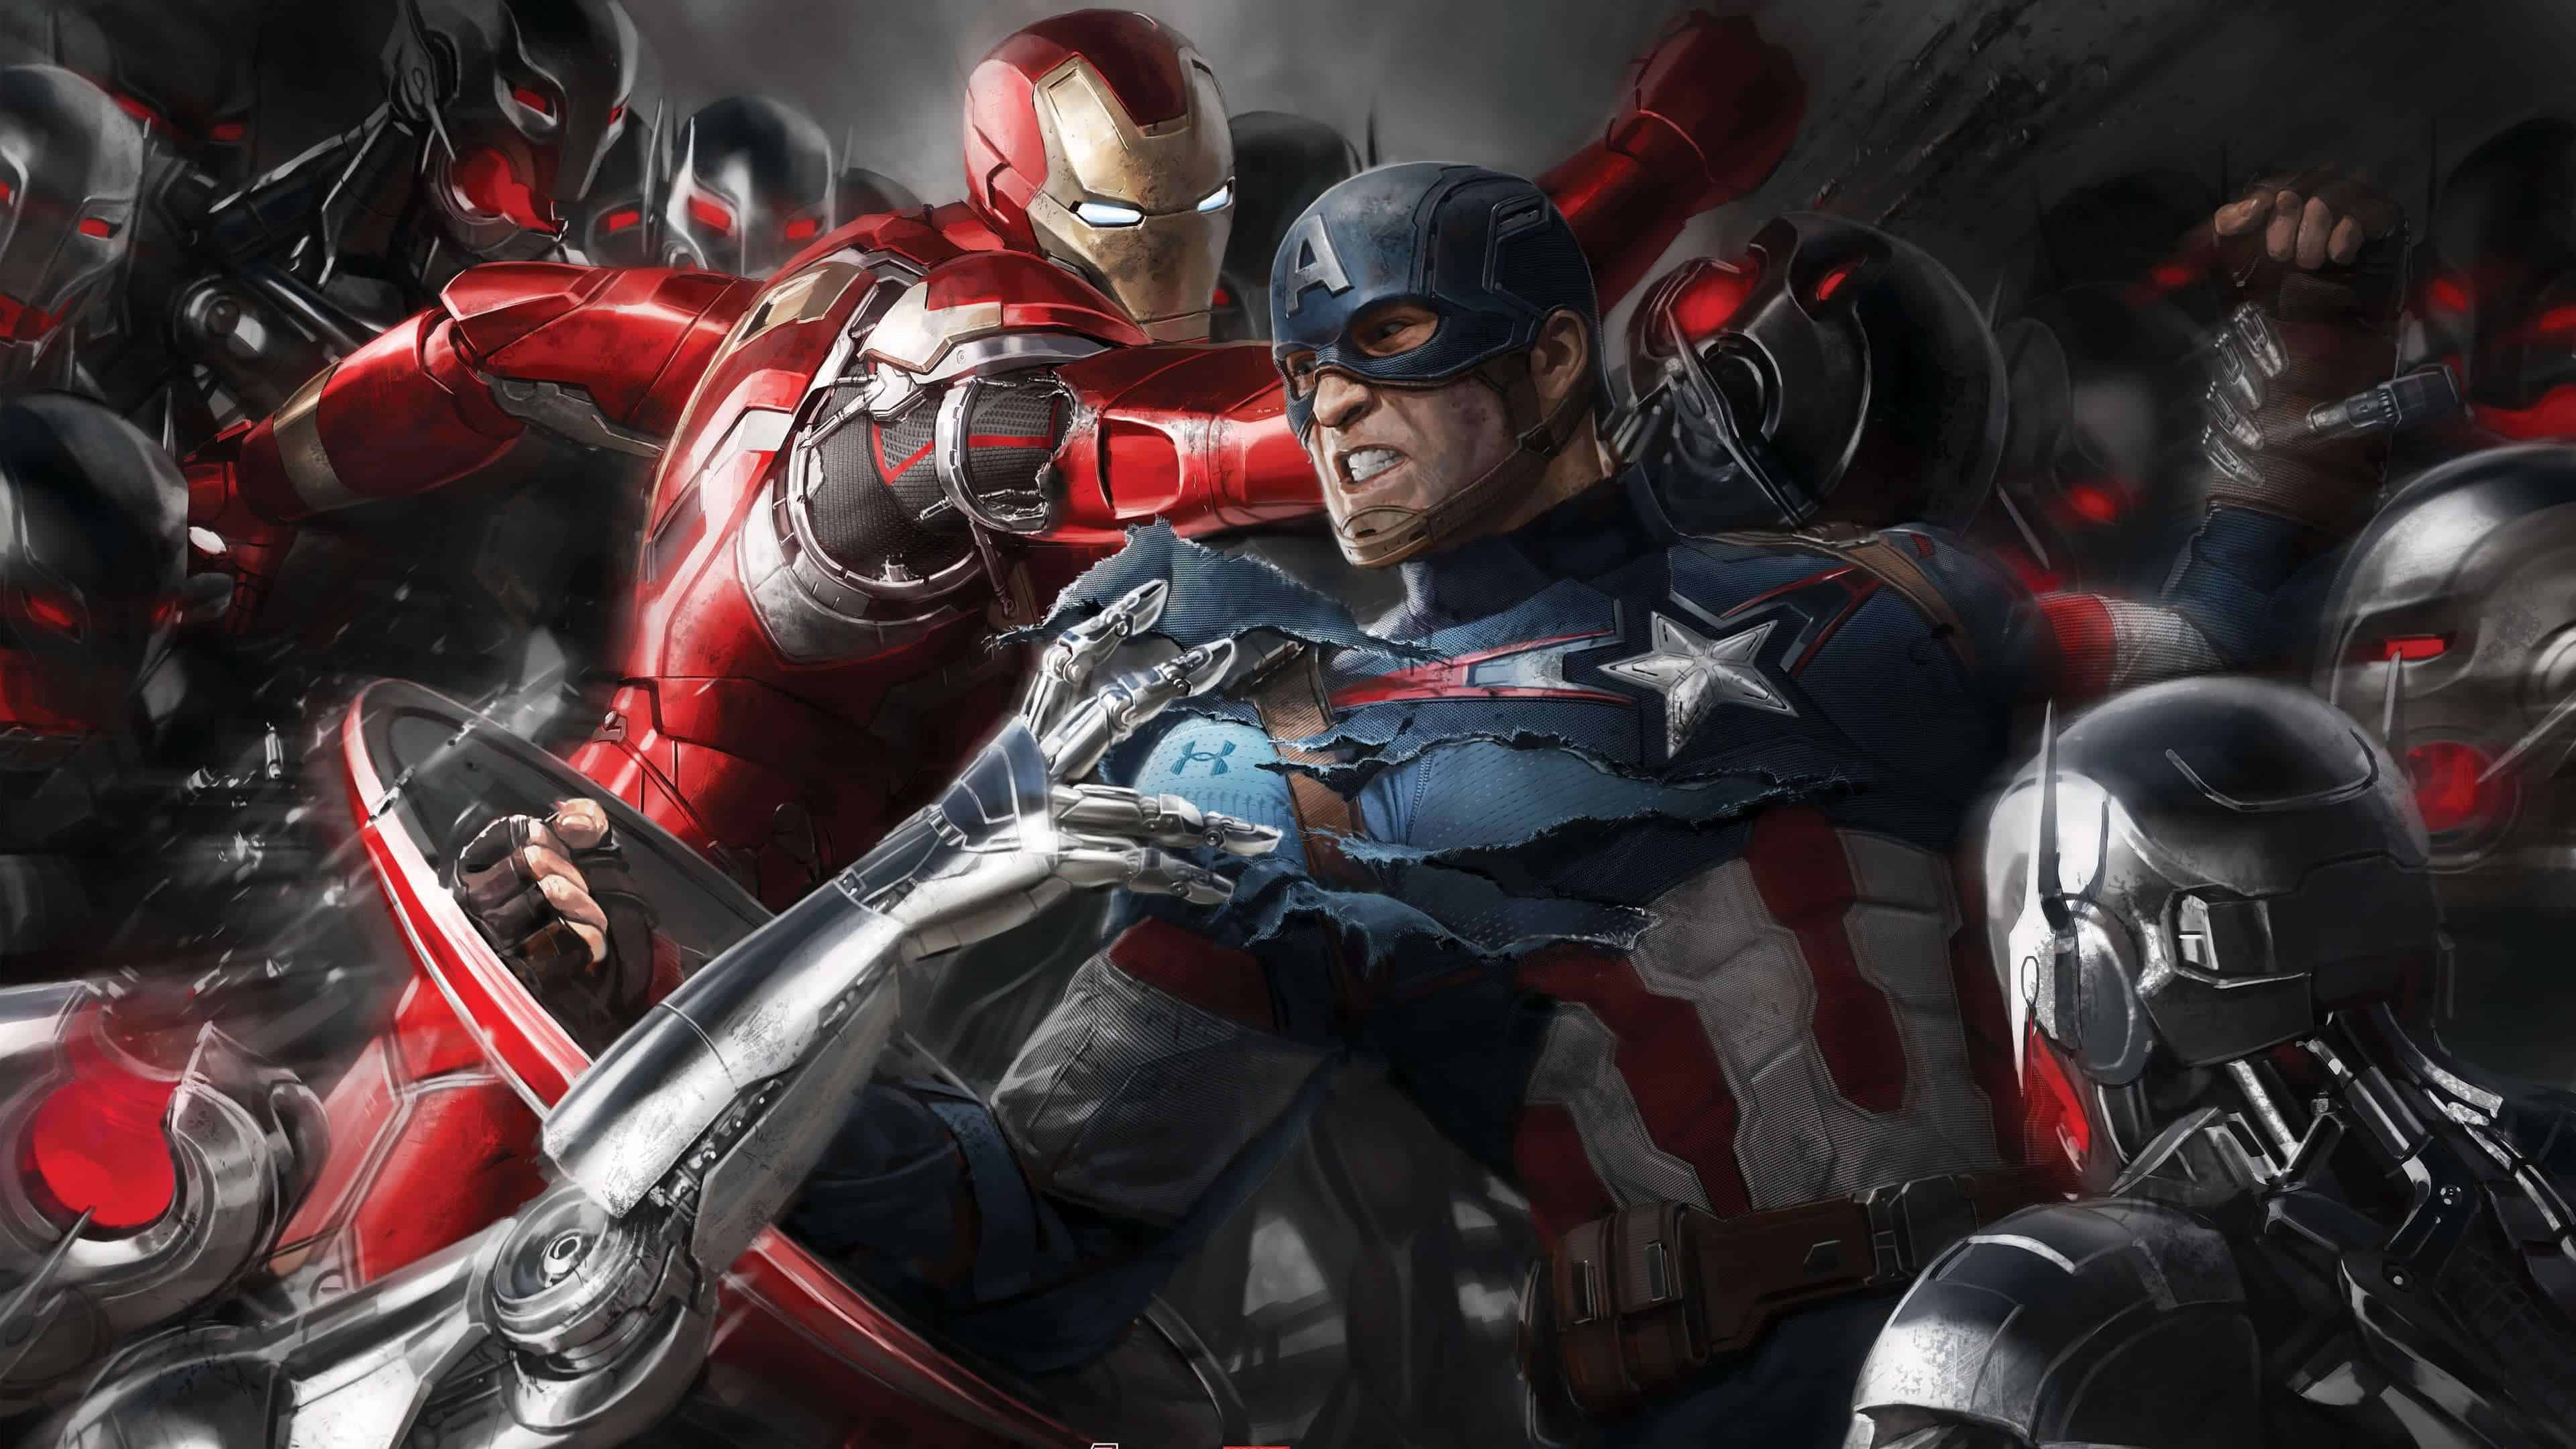 Captain America And Iron Man Civil War Uhd 4k Wallpaper Pixelz